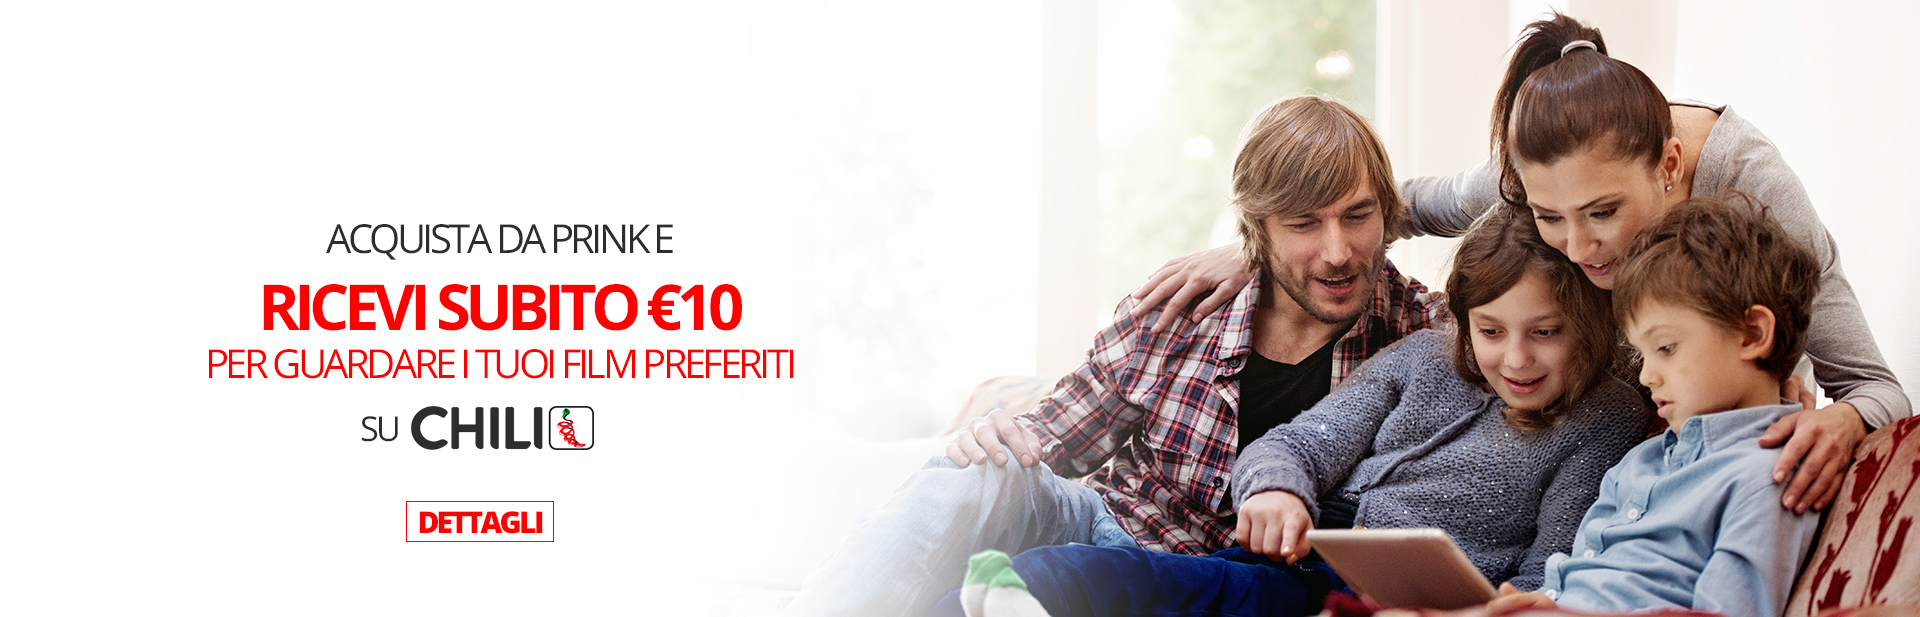 coupon-10-euro-film-streaming-ChiliTV-Prink-SL